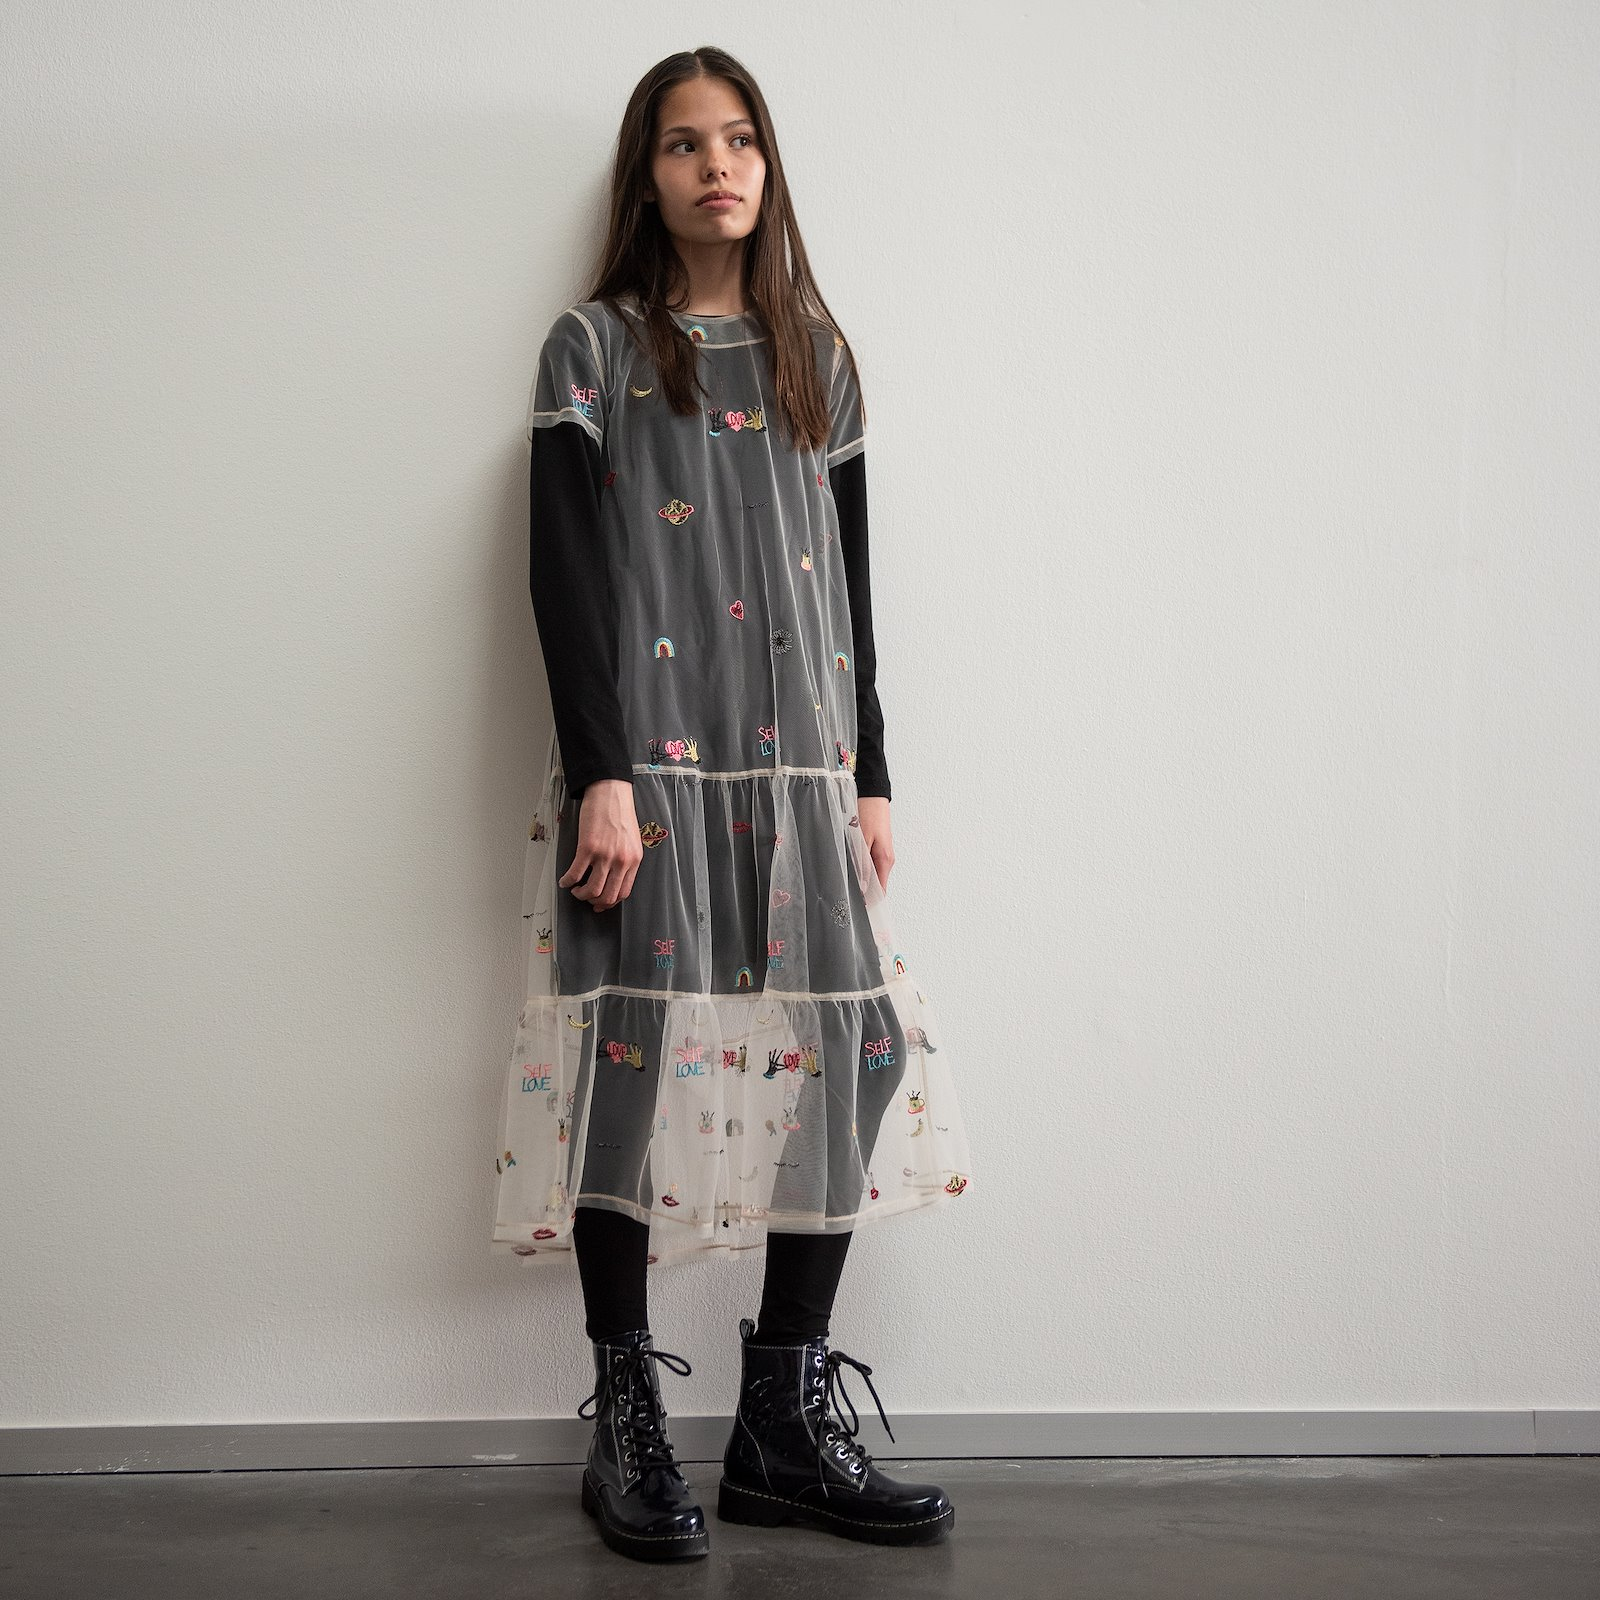 Dress and top, 110/5y p63062_640280_p63064_270265_p60032_270265_sskit